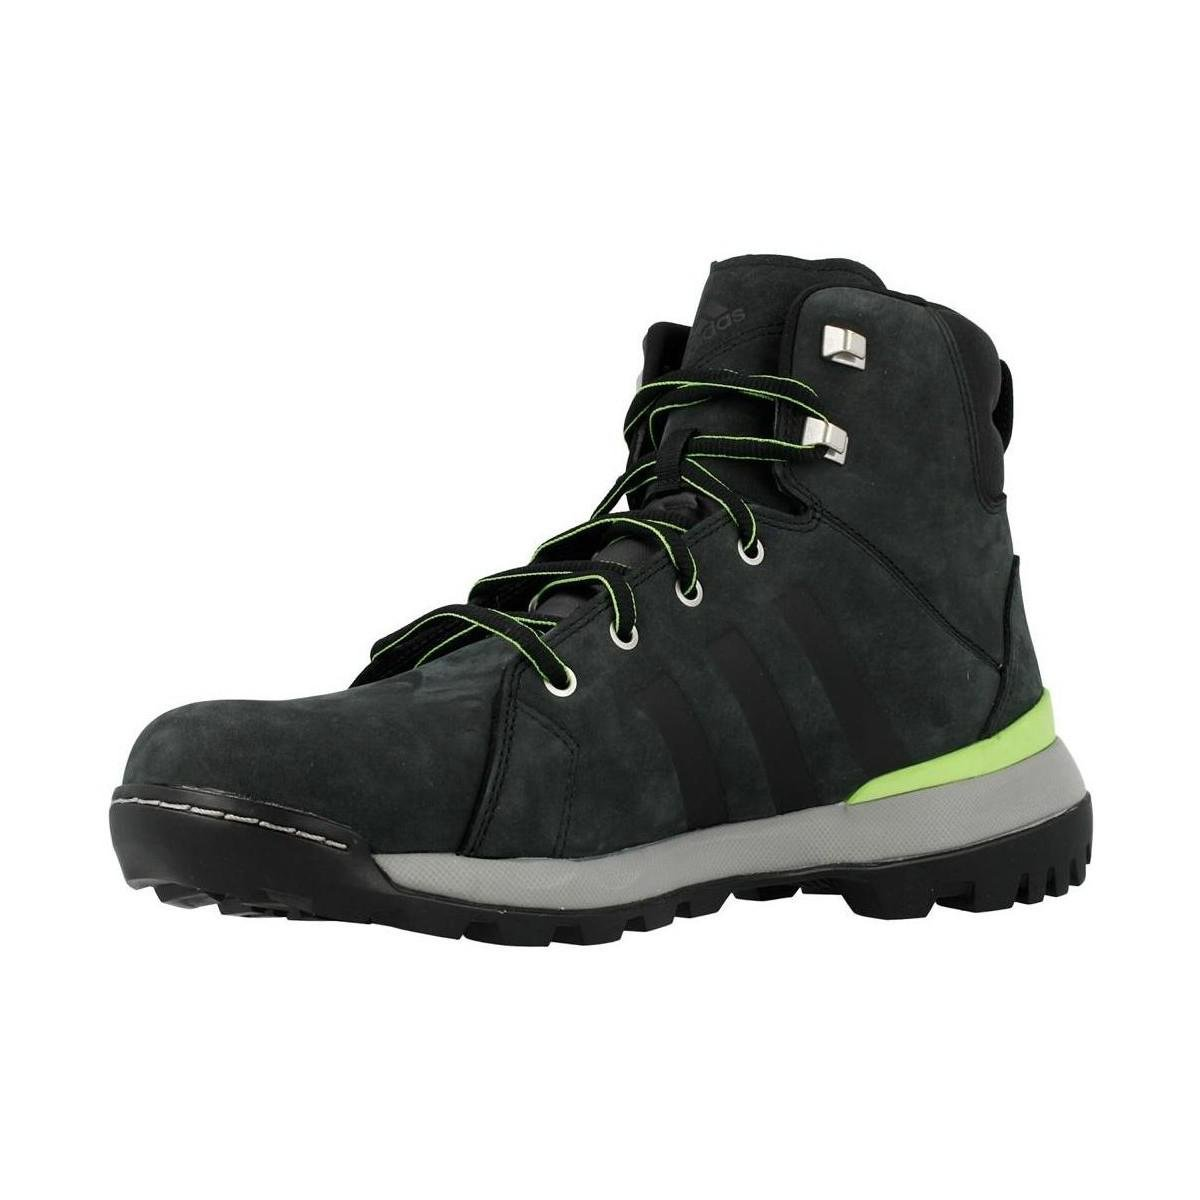 10bc7263145 adidas Trail Cruiser Mid Men s Walking Boots In Green in Green for ...